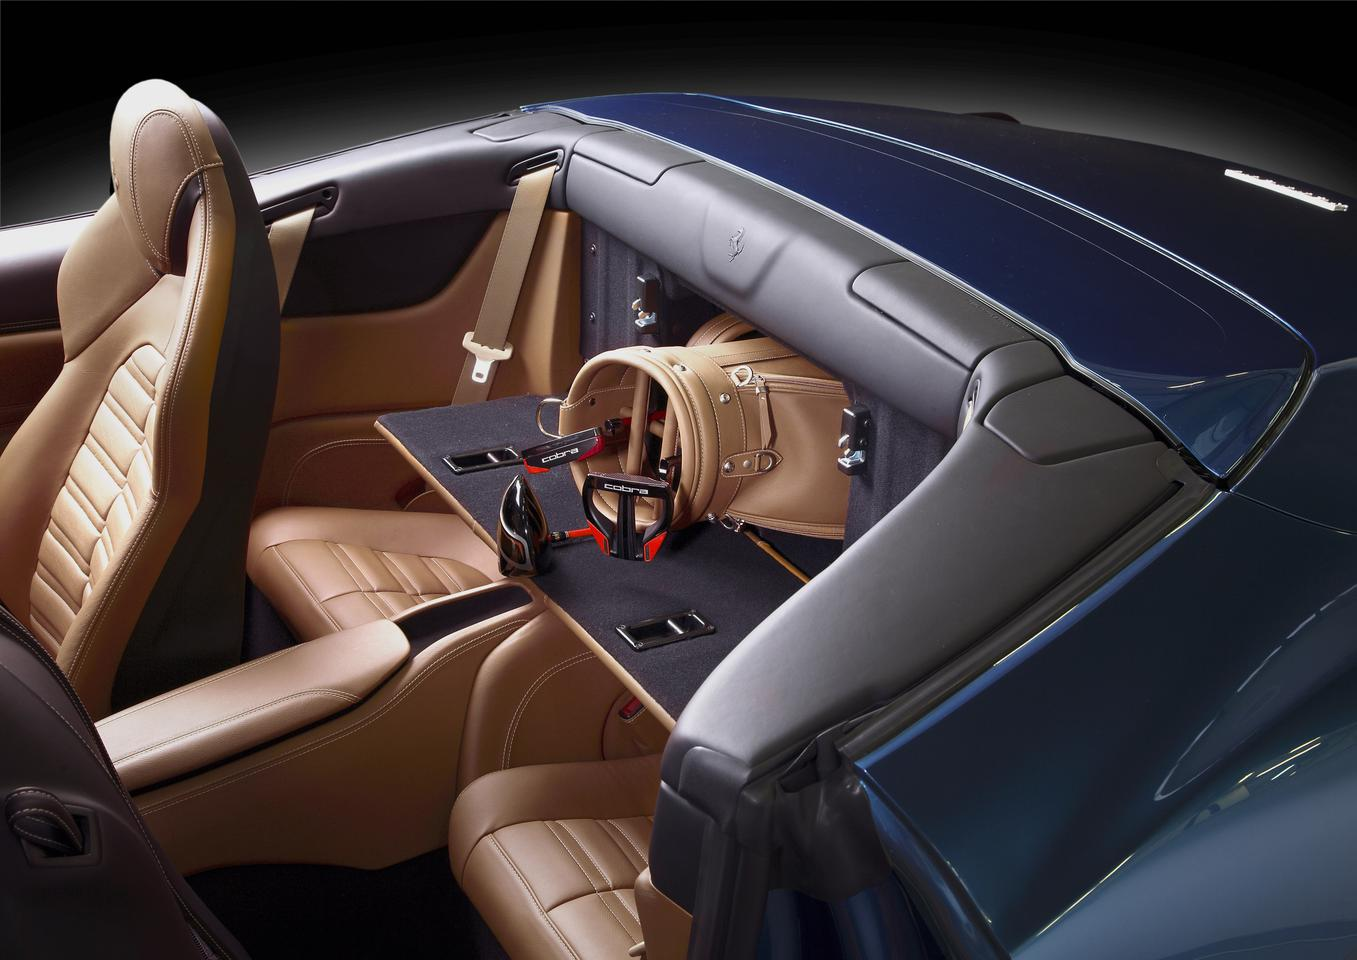 The Ferrari California T's boot can be accessed through the back seats